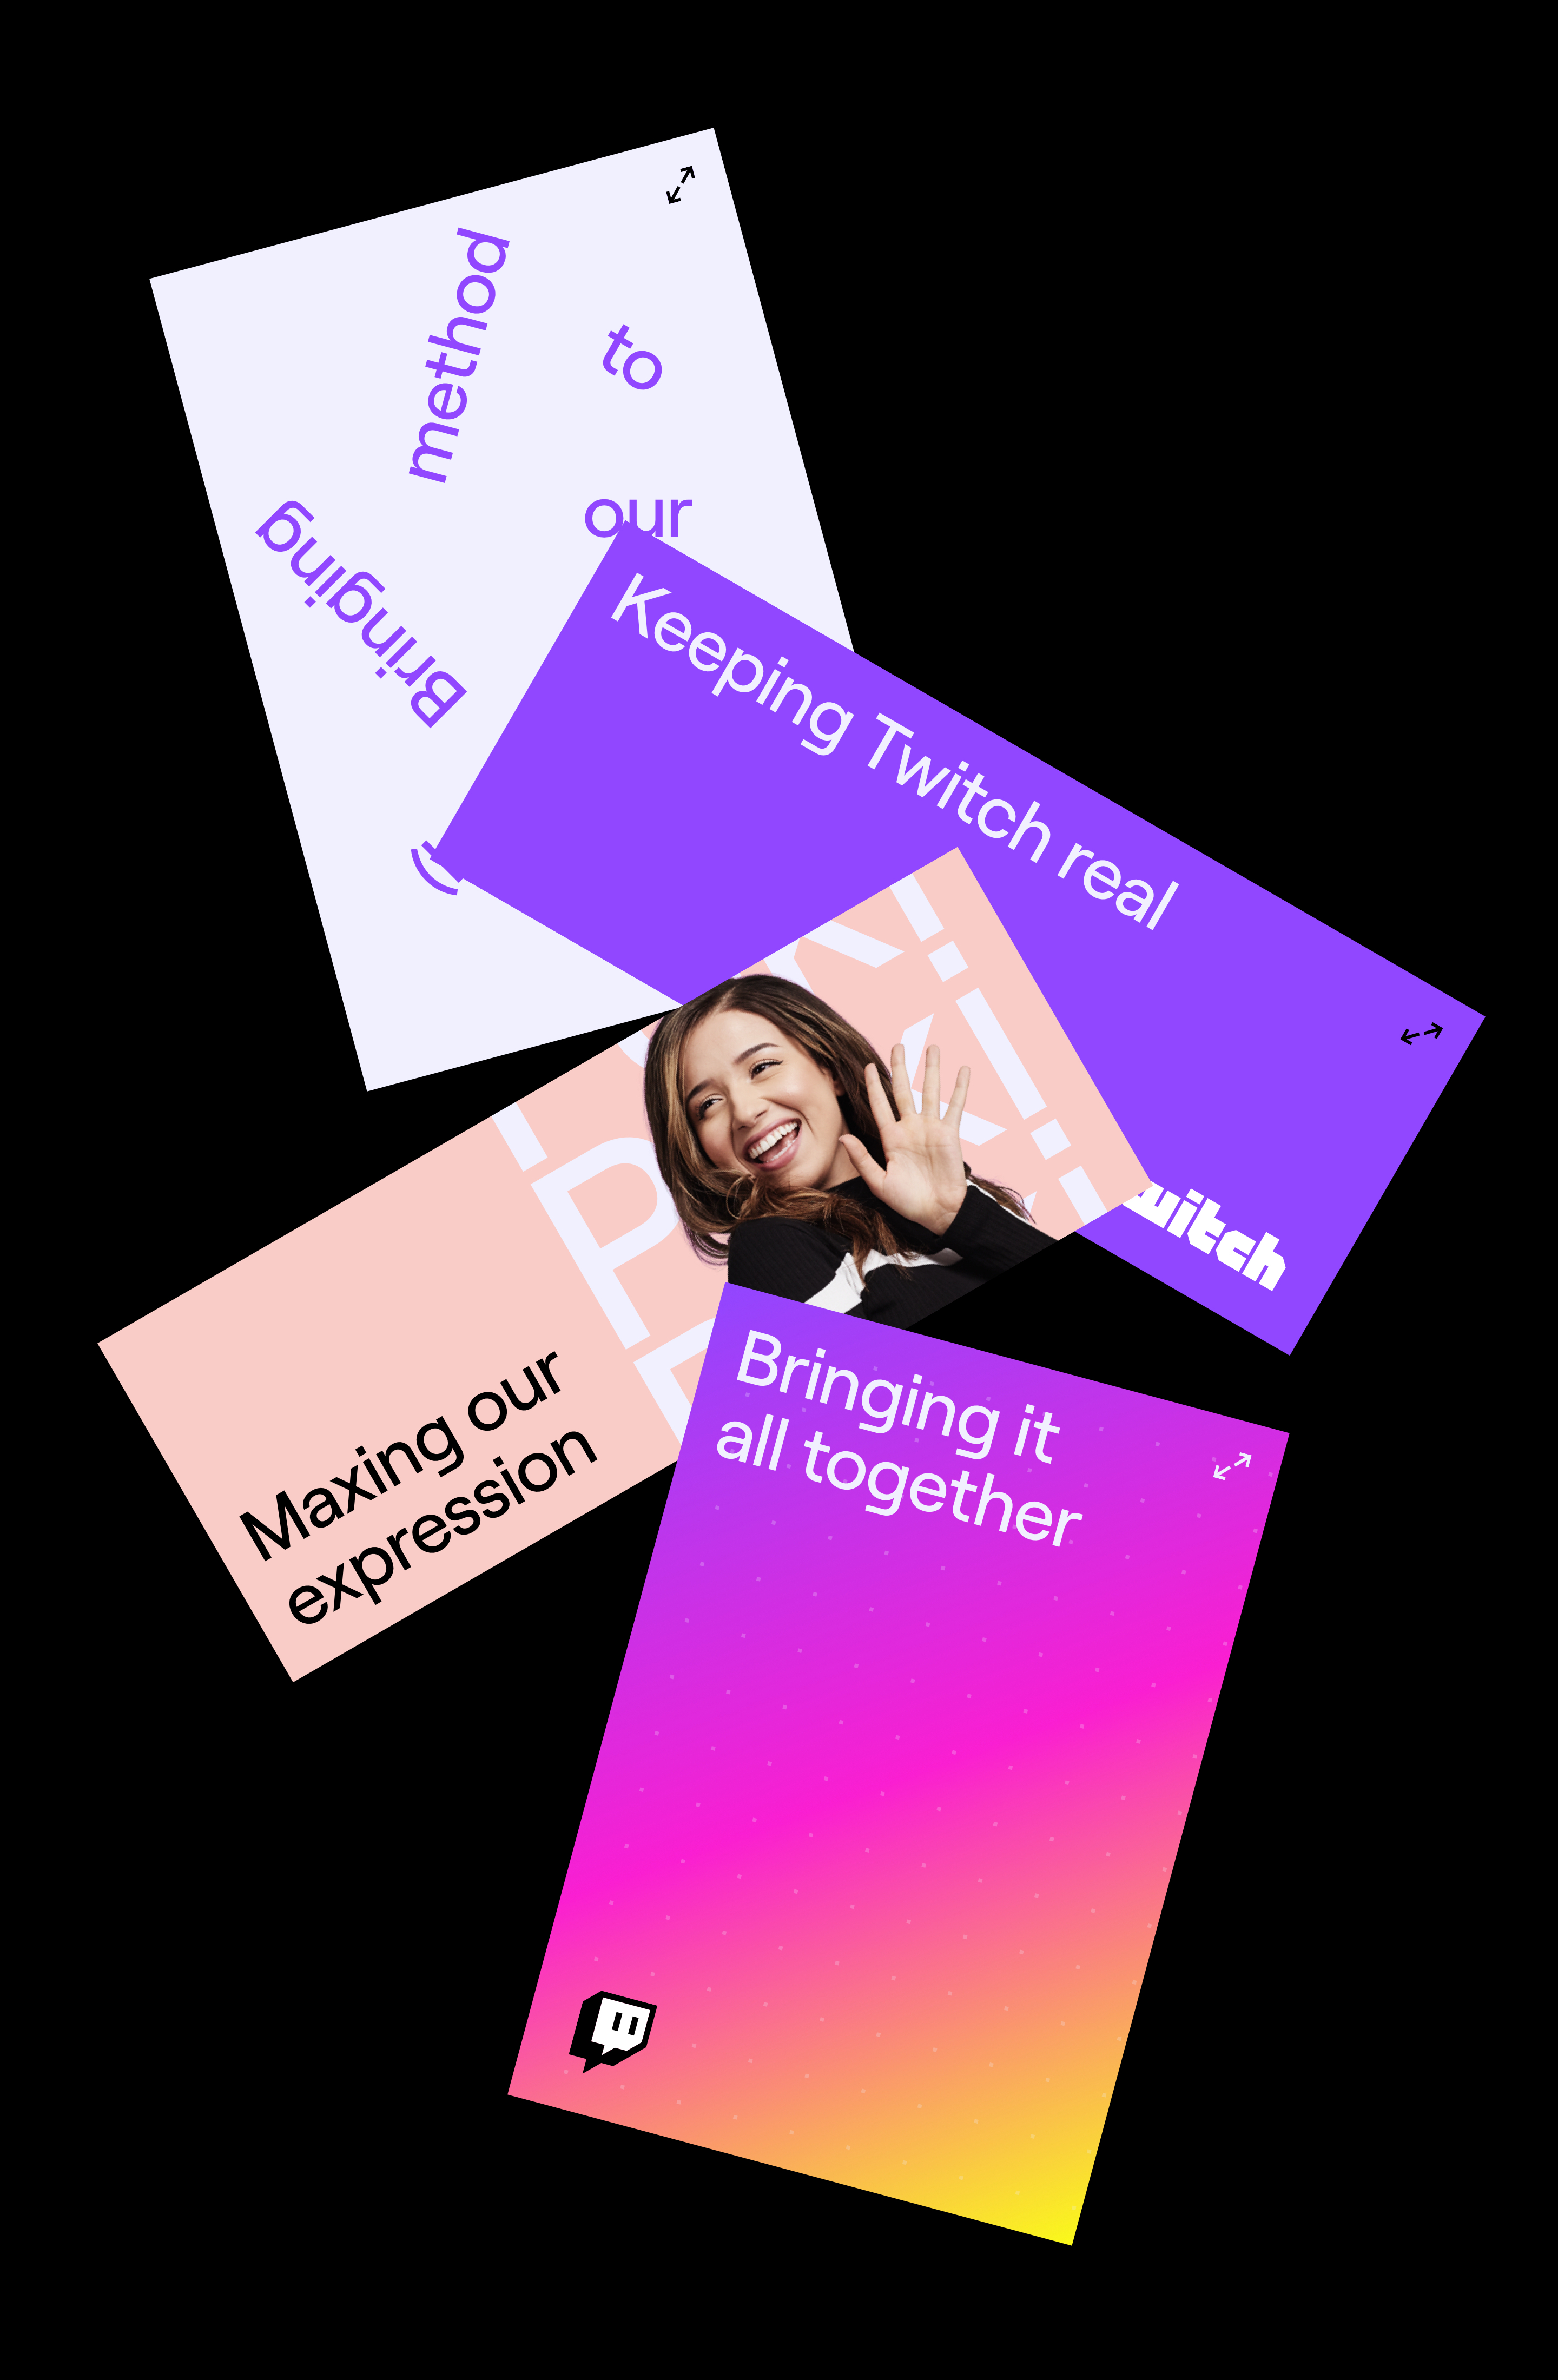 landing_cards_twitch